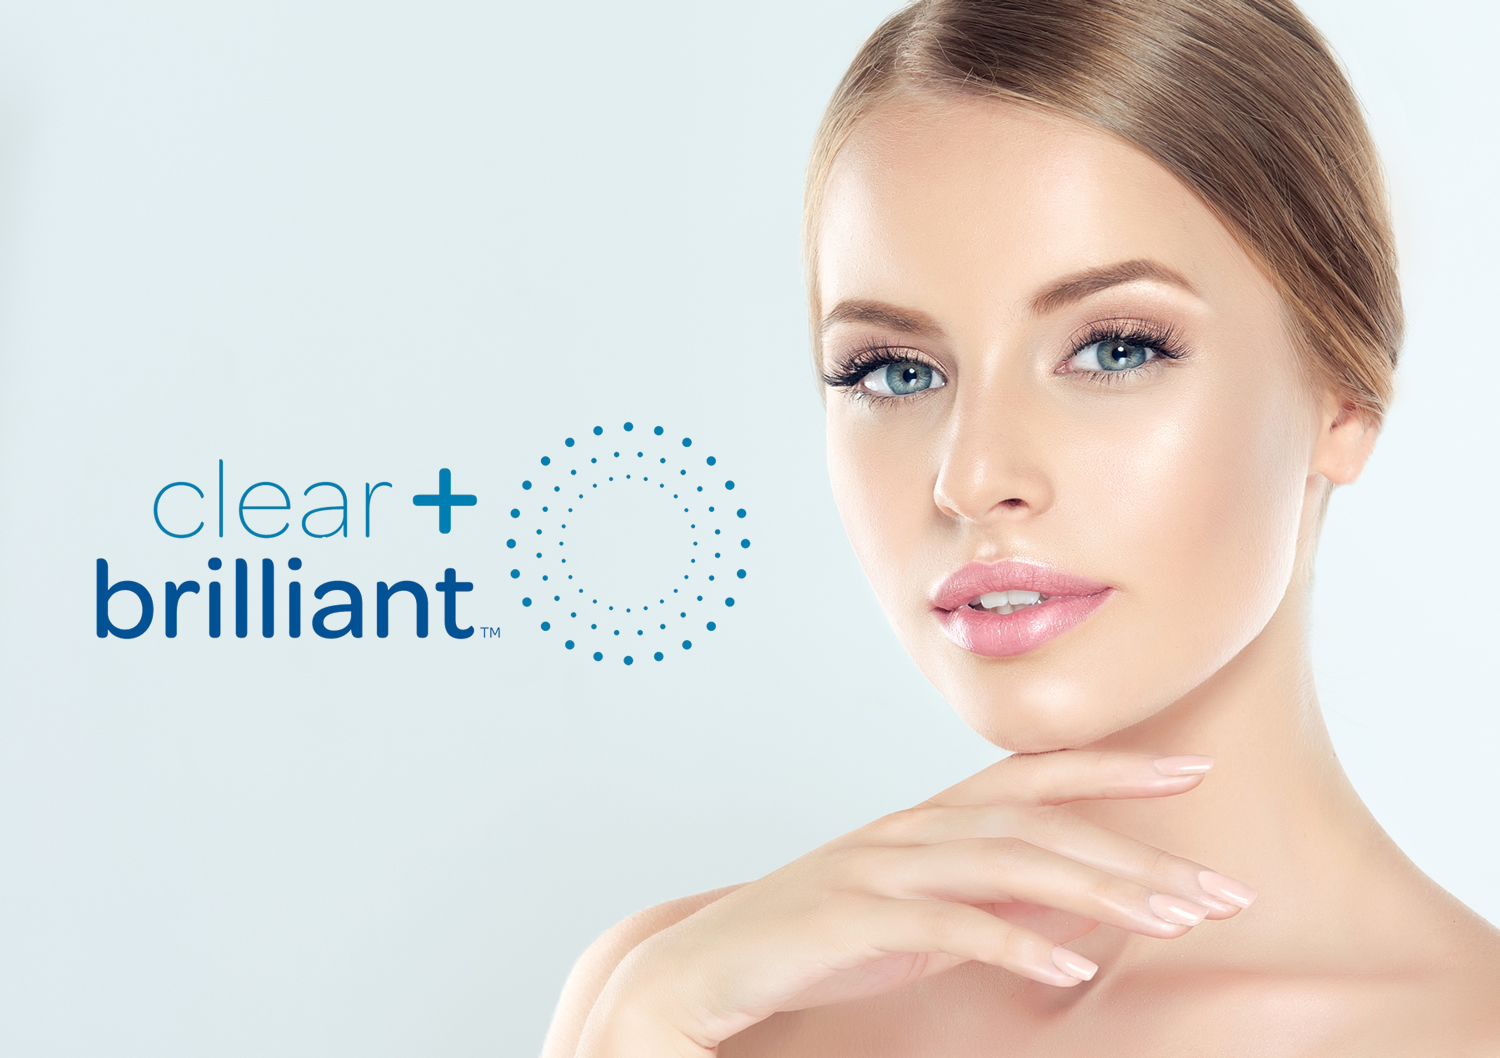 Dr-Jason-Champagne-Non-Surgical-Procedure-Clear-and-Brilliant.jpg